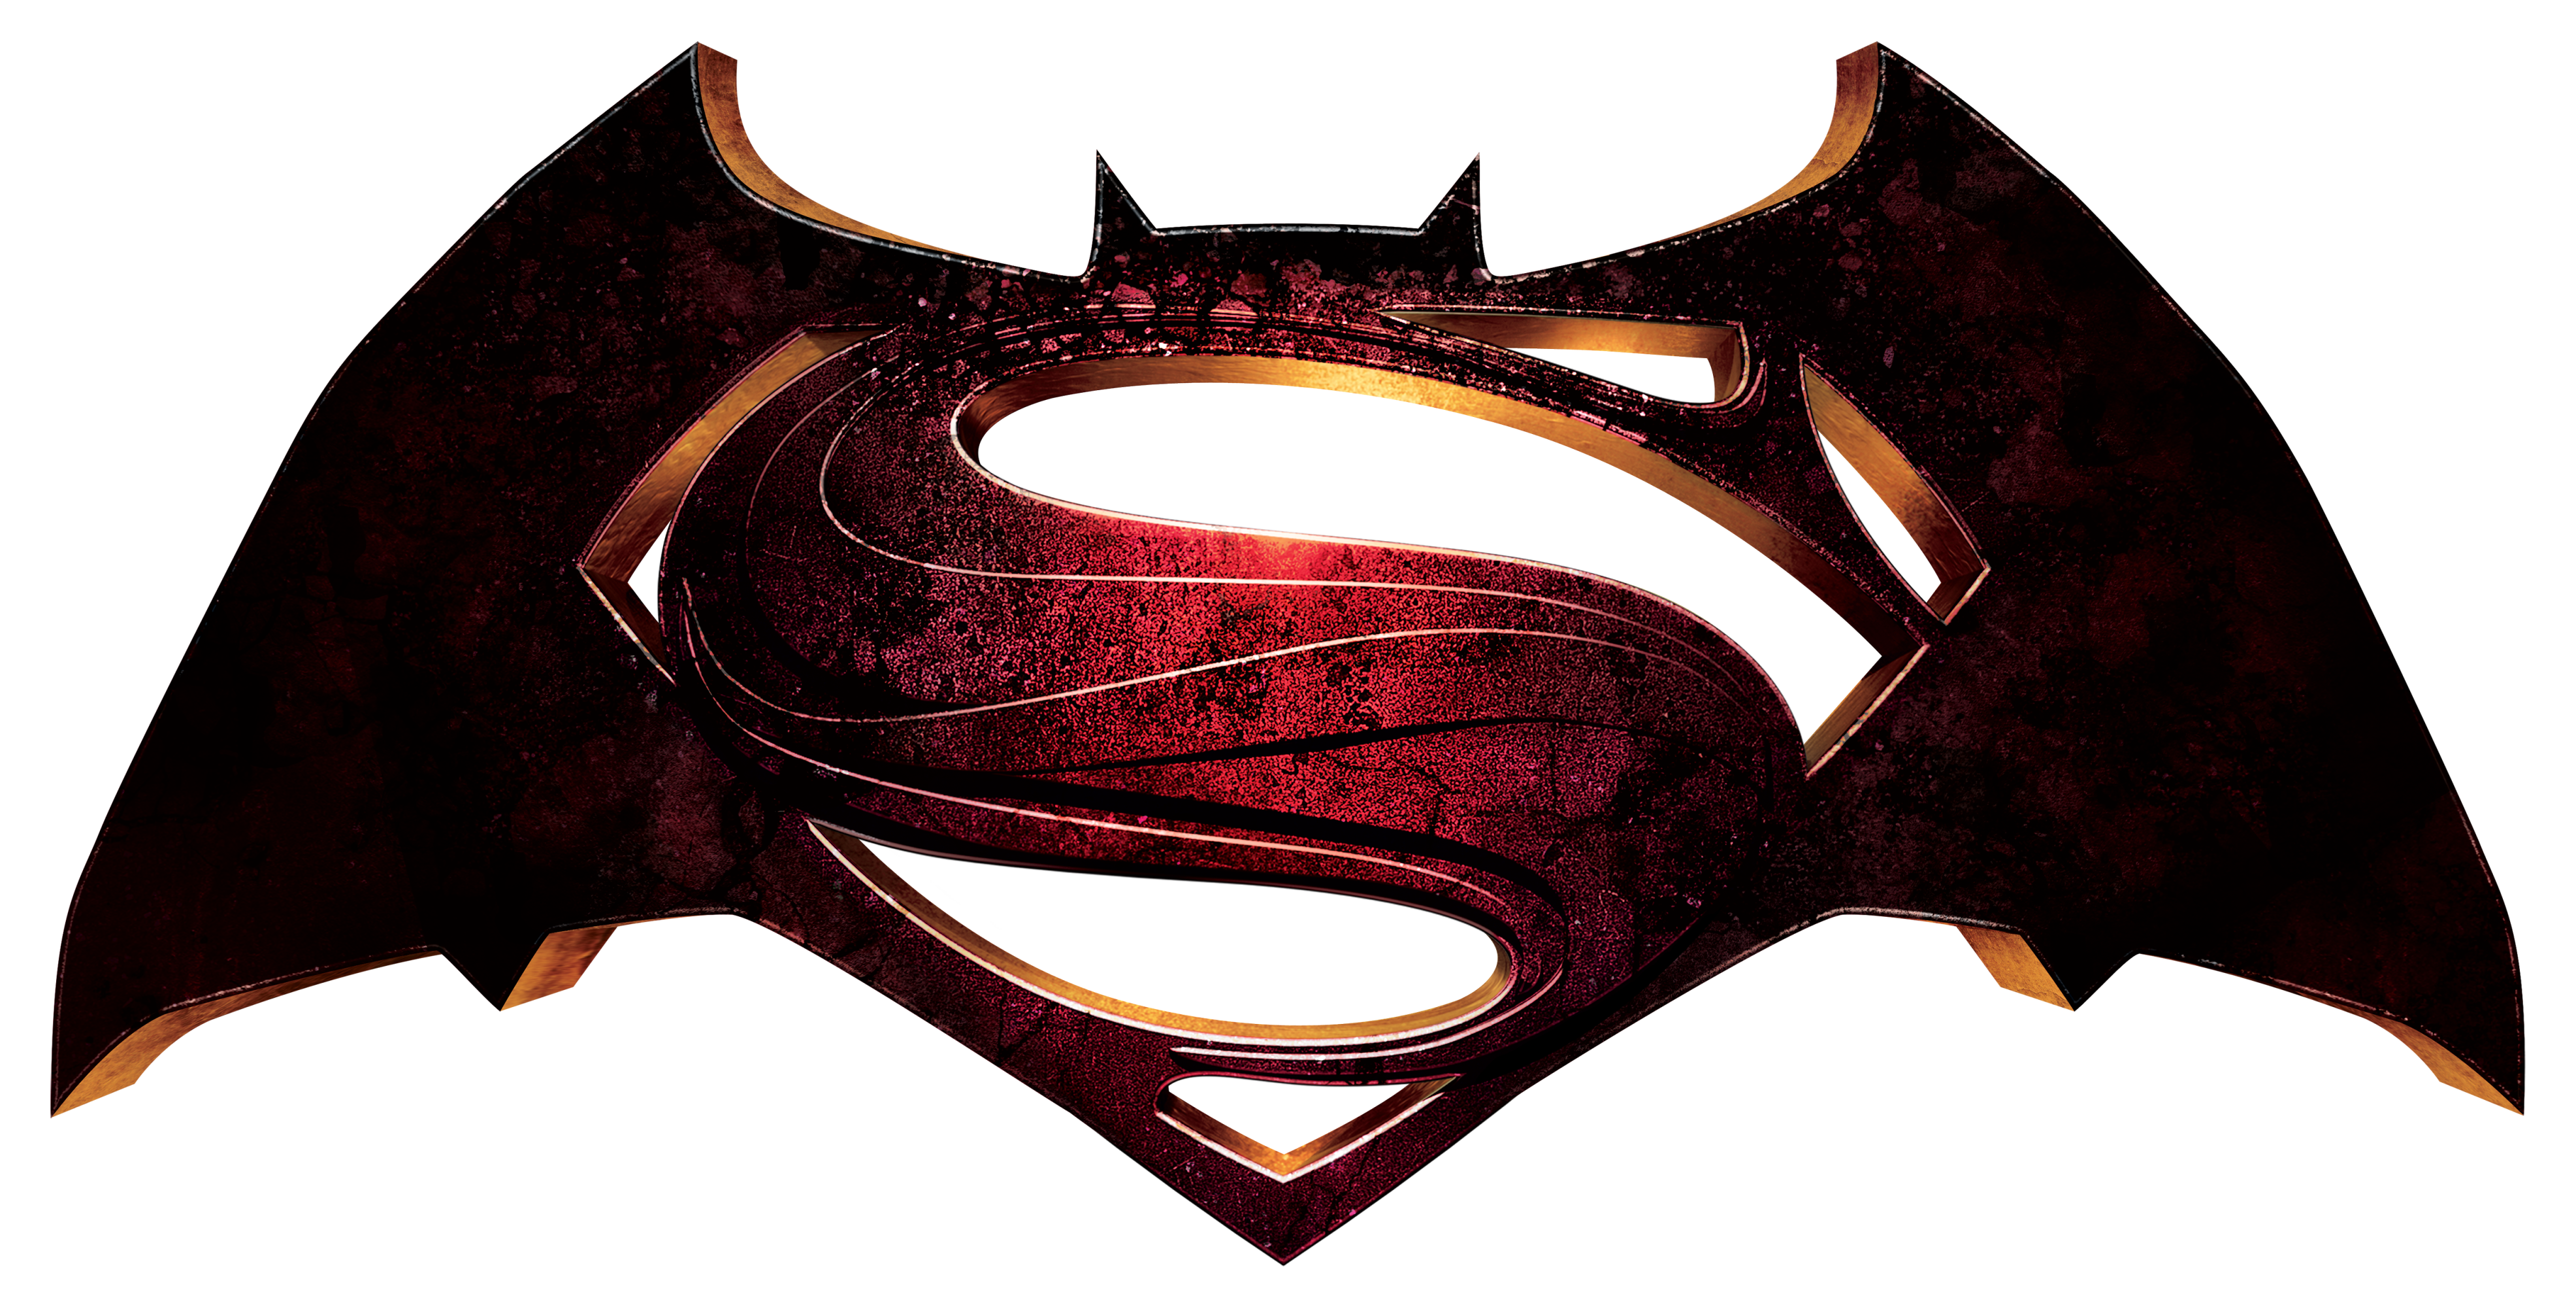 Apple outline with superman image clipart picture library stock Batman Superman Logo - ClipArt Best picture library stock